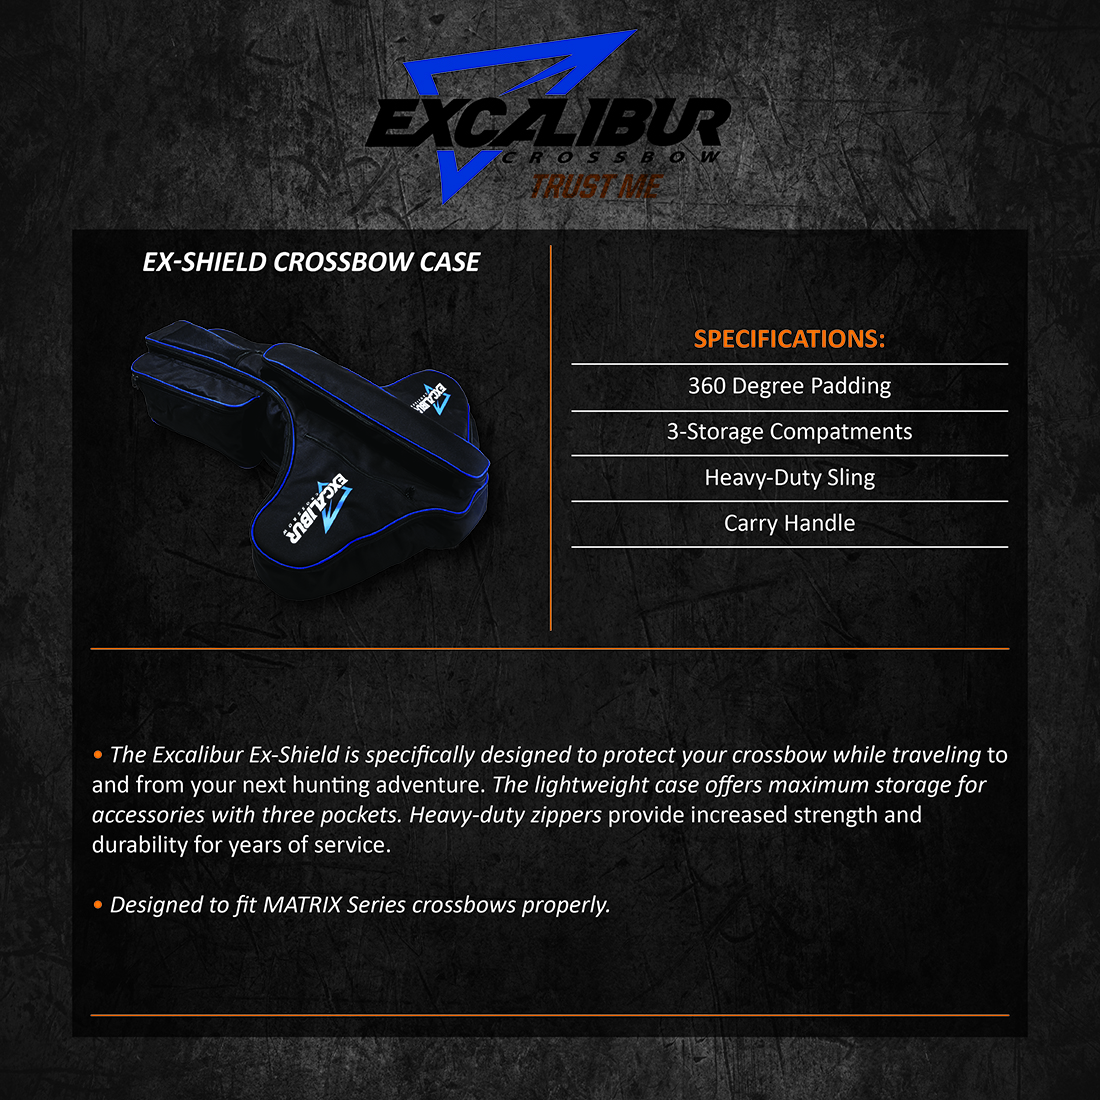 Excalibur_ExShield_Crossbow_Case_Product_Description